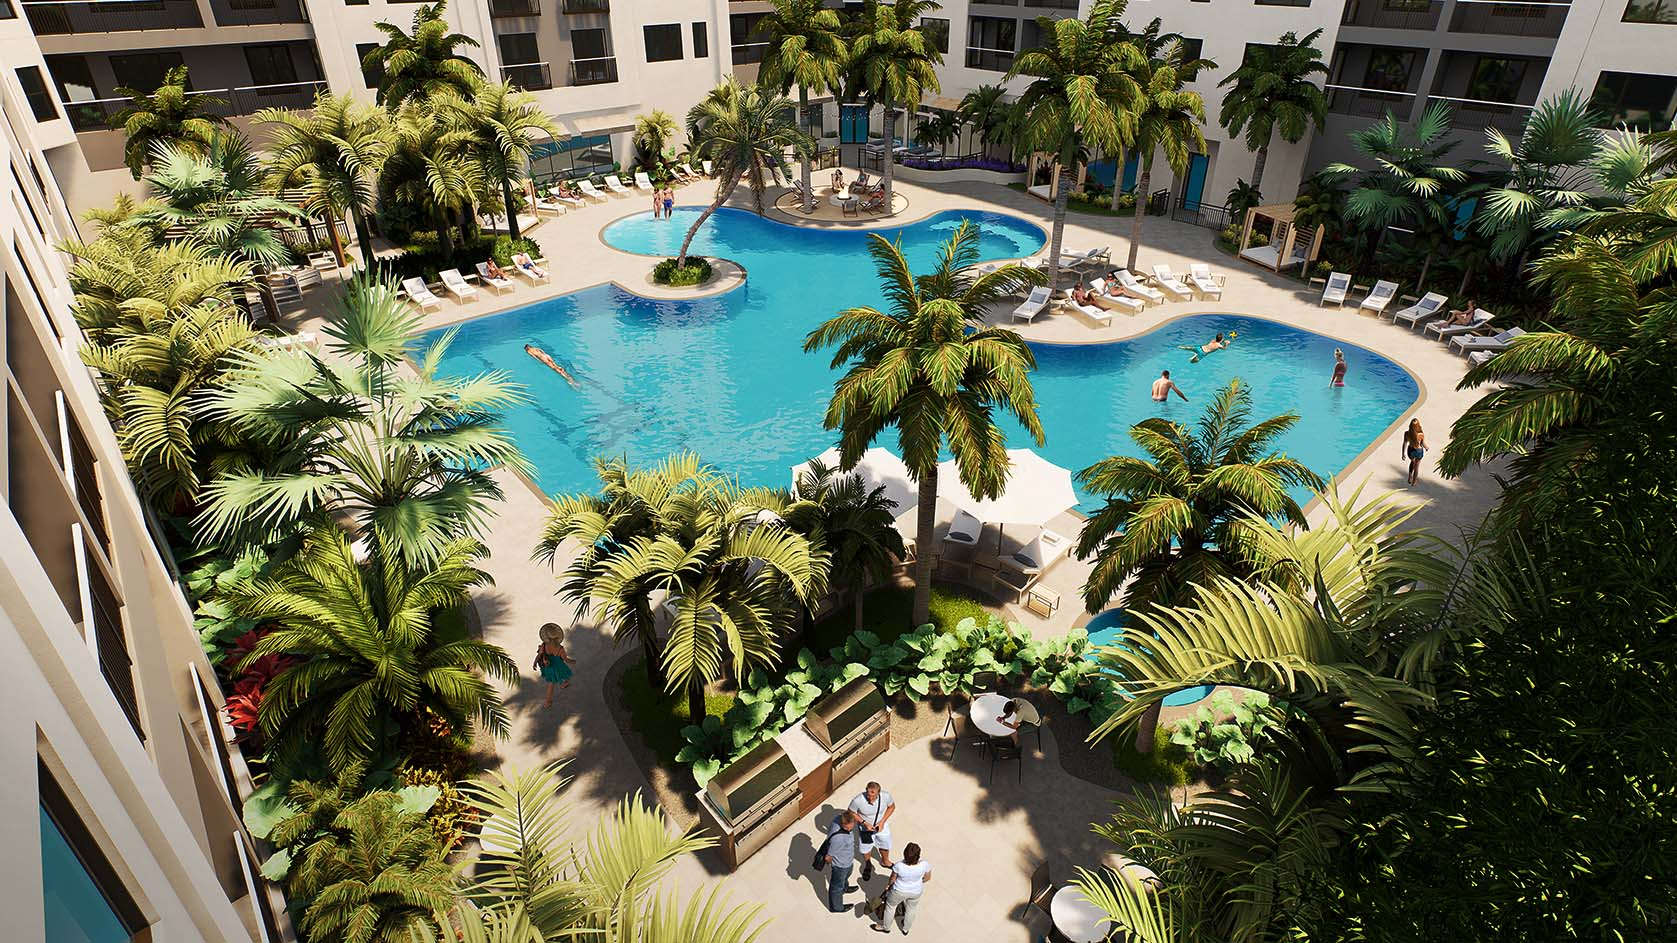 Amenities - A resort-style pool, zen lanai, and rooftop terrace are only the beginning. Explore over 50,000 square feet of unparalleled spaces for living life to the fullest.